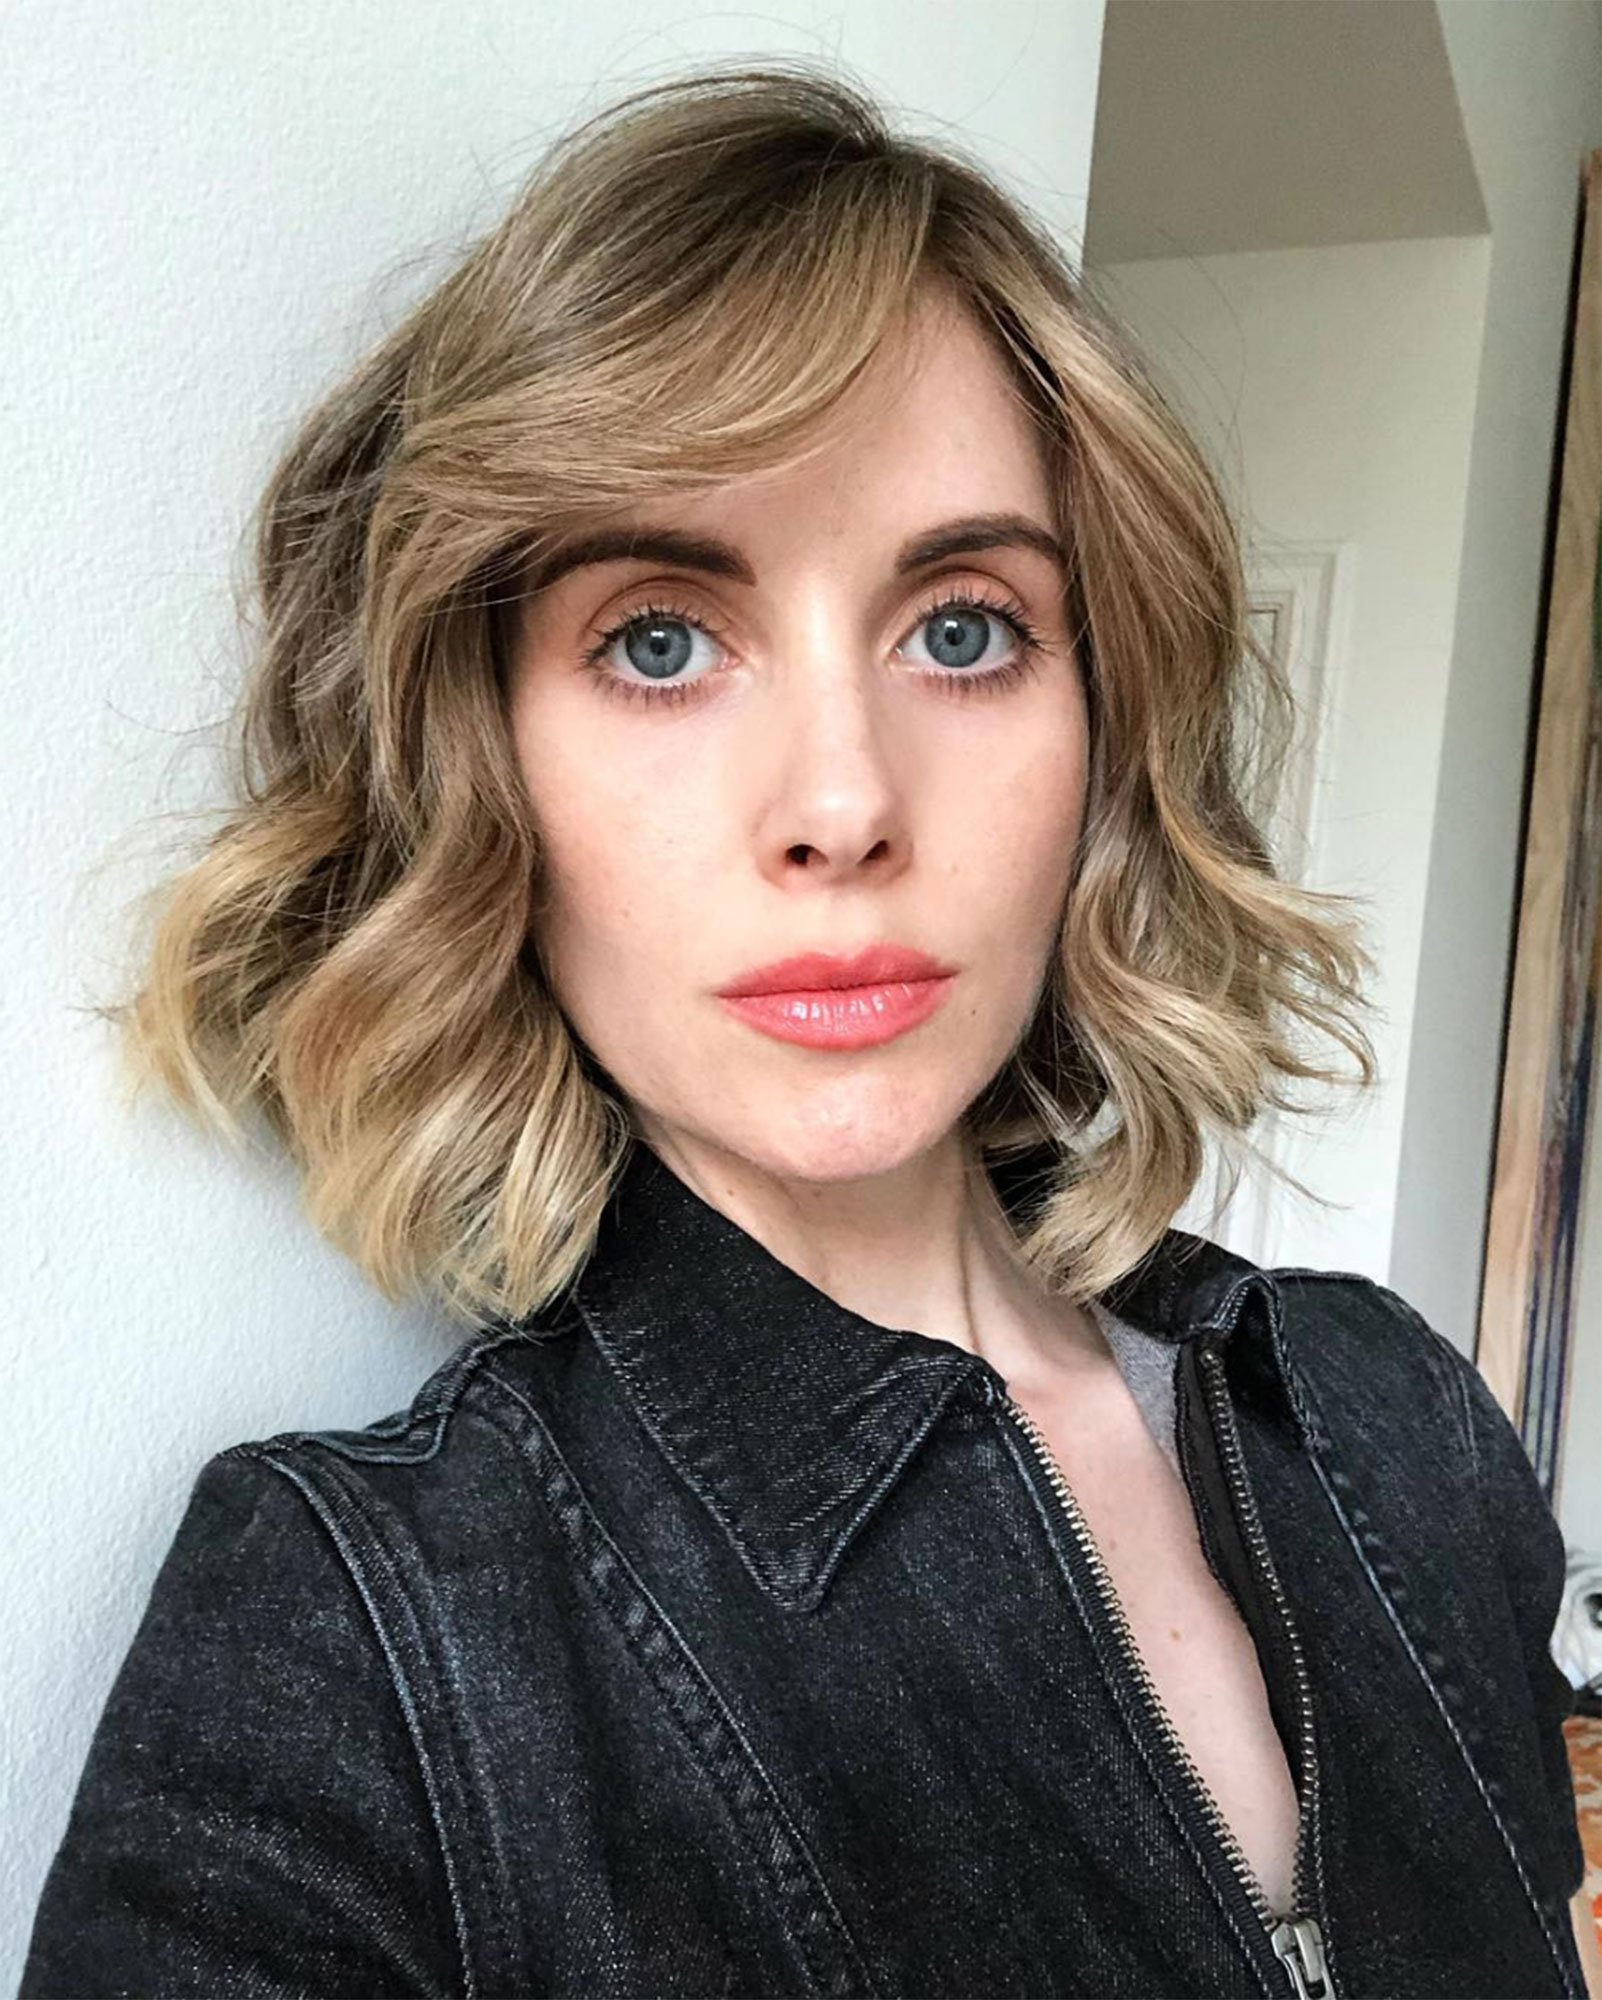 Alison Brie hairstyle hair transformation - Alison Brie